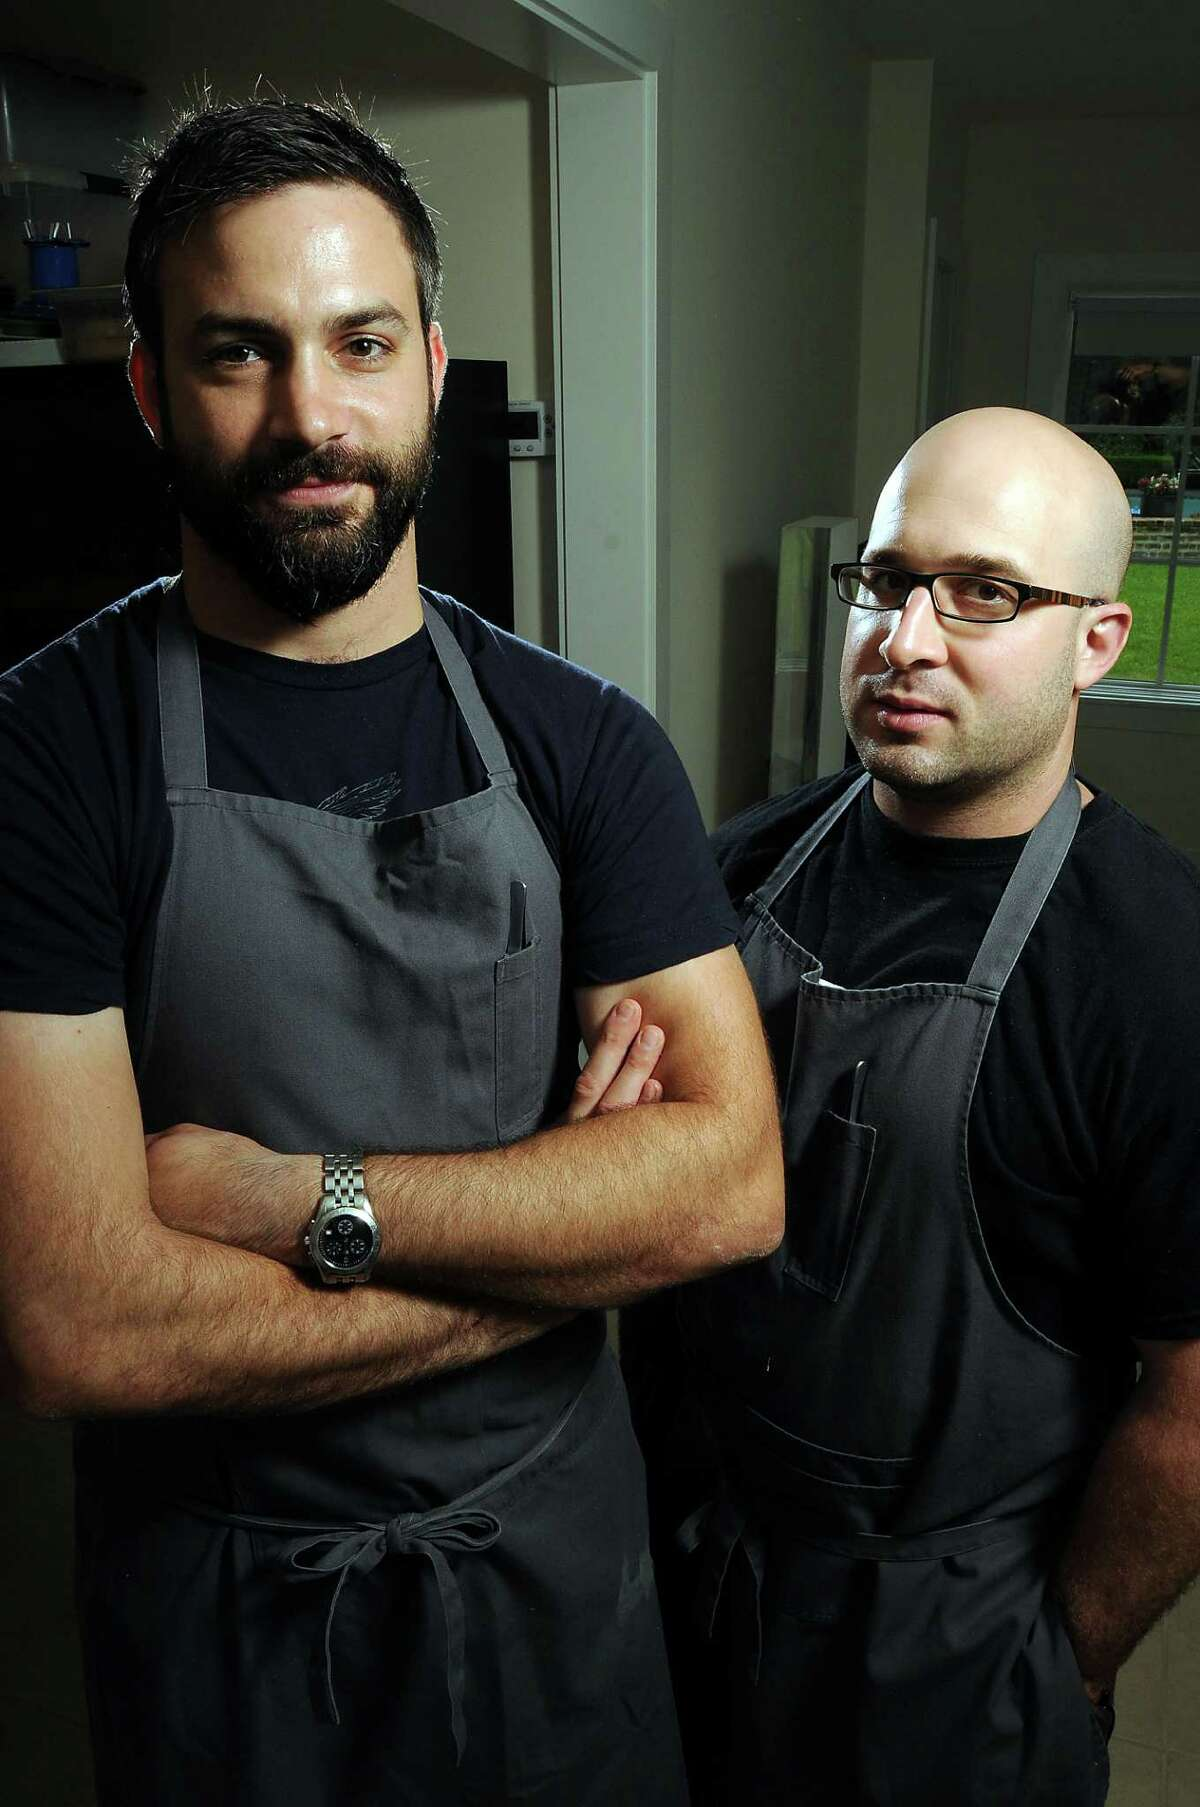 Chefs Terrence Gallivan, left, and Seth Siegel-Gardner are putting the final touches on their new dining experience - the dual-concept eatery Provisions and the Pass.